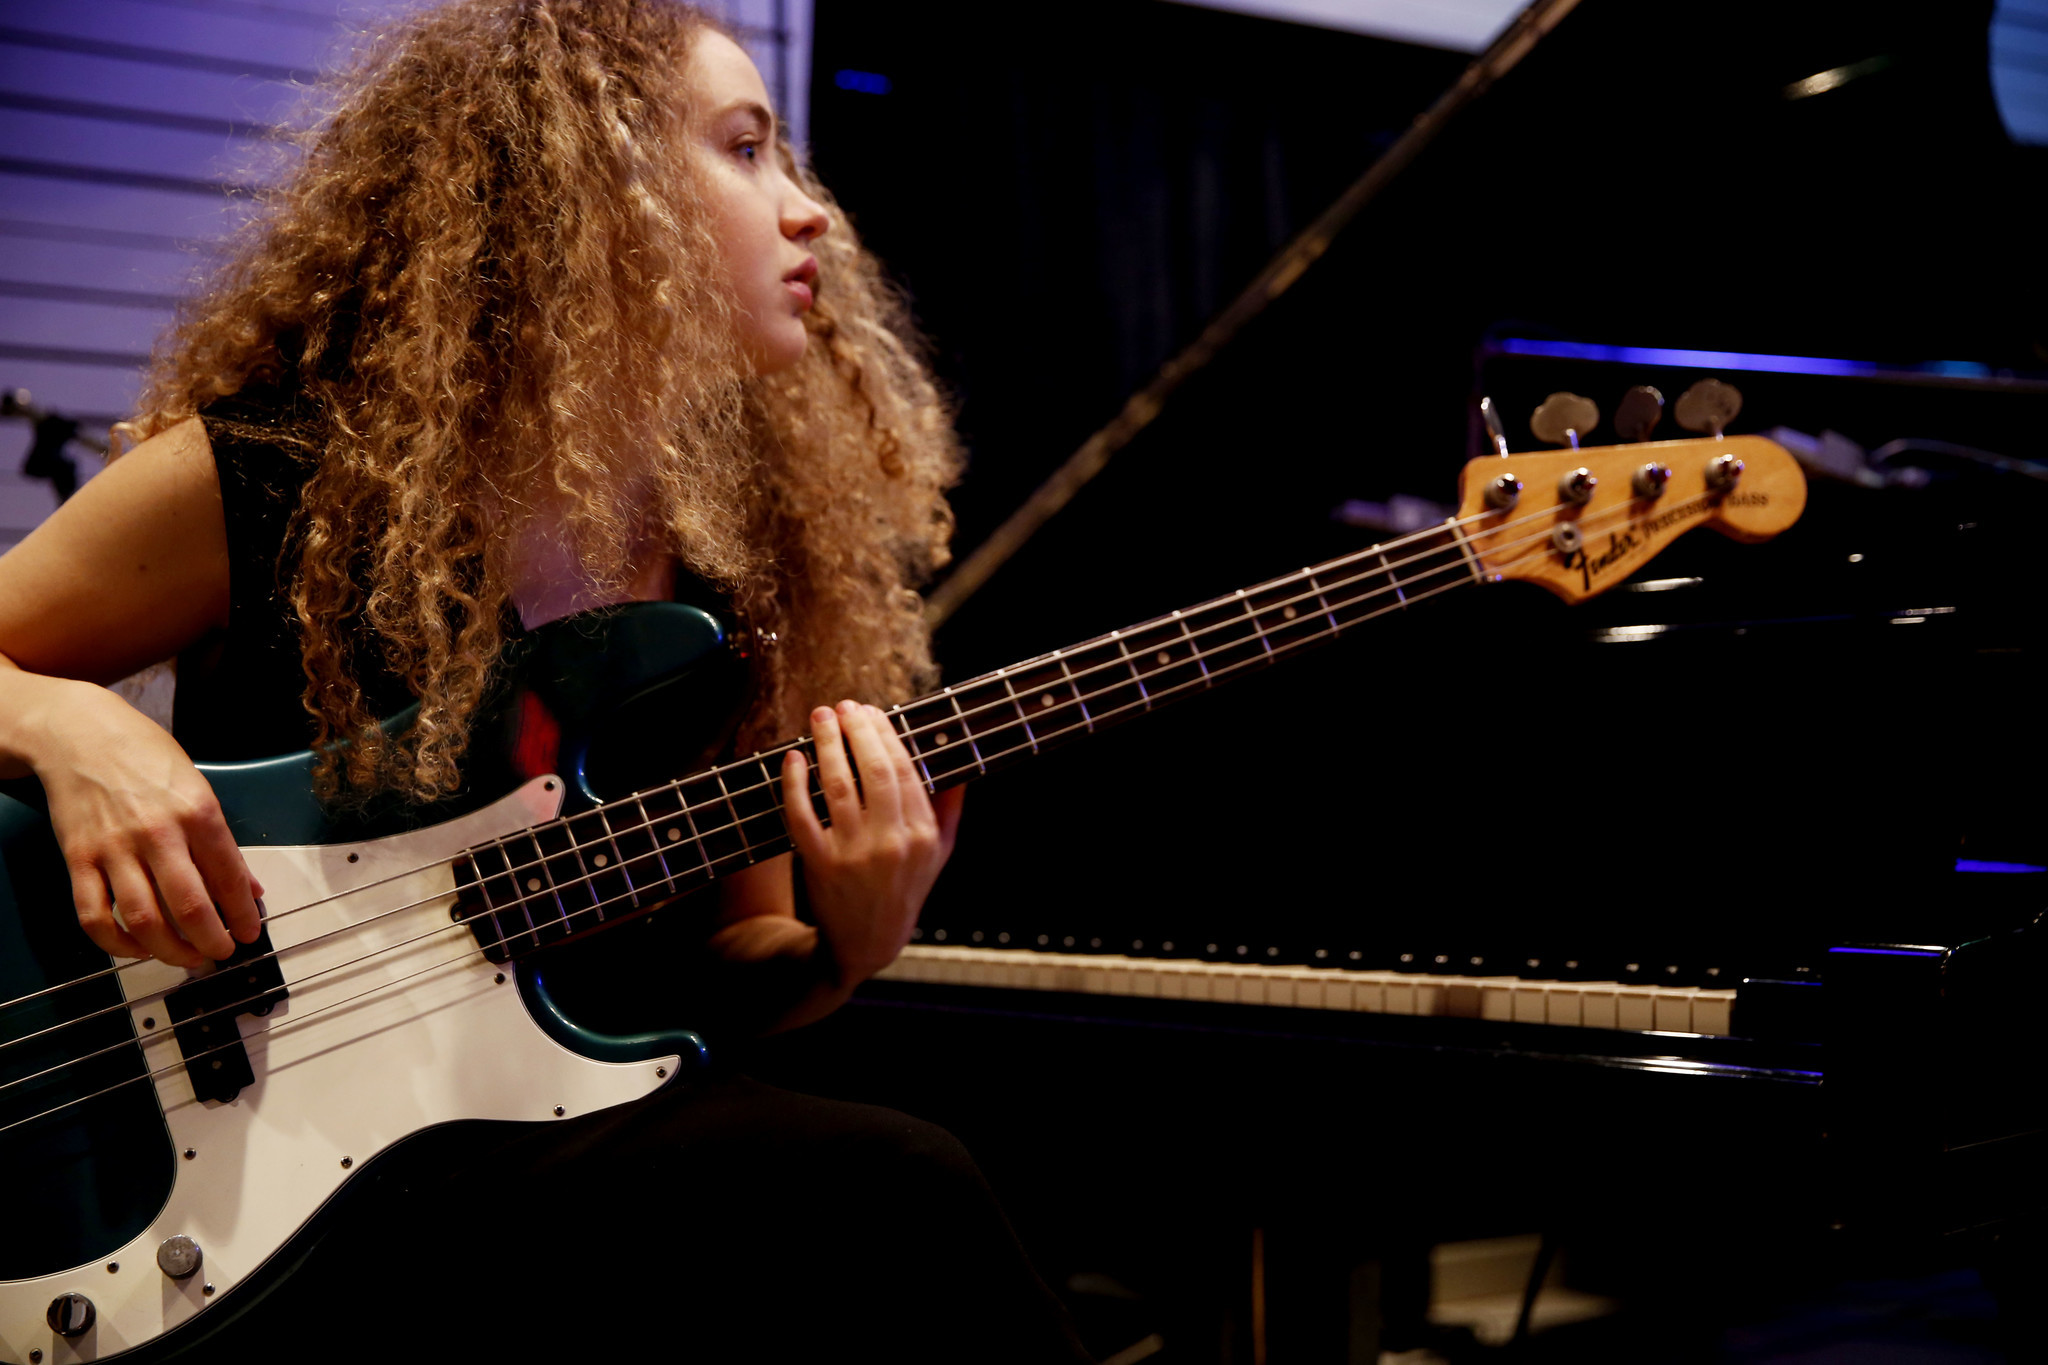 Australian bass guitarist Tal Wilkenfeld works on music in Studio A at Village Studios on December 8, 2016.